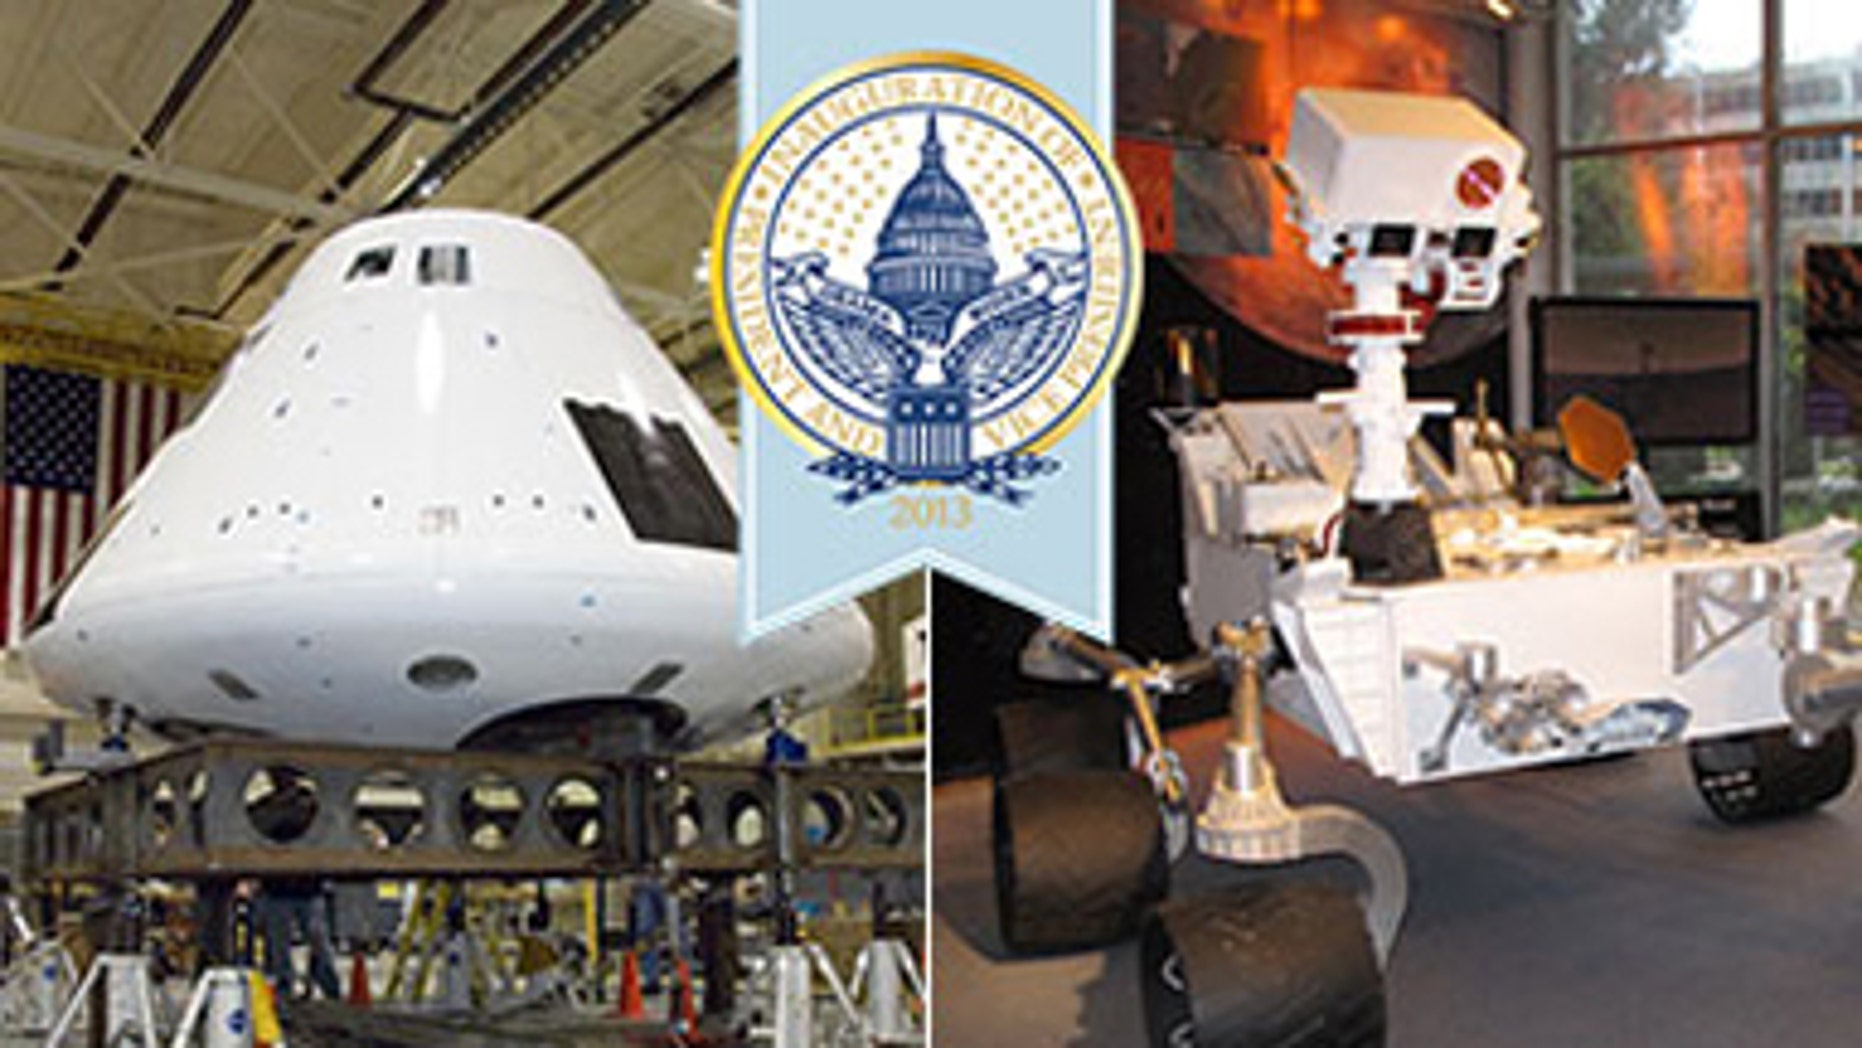 Full-sized models of the Orion spacecraft and the Mars Curiosity Rover will be on display during the inaugural parade (Jan. 21).